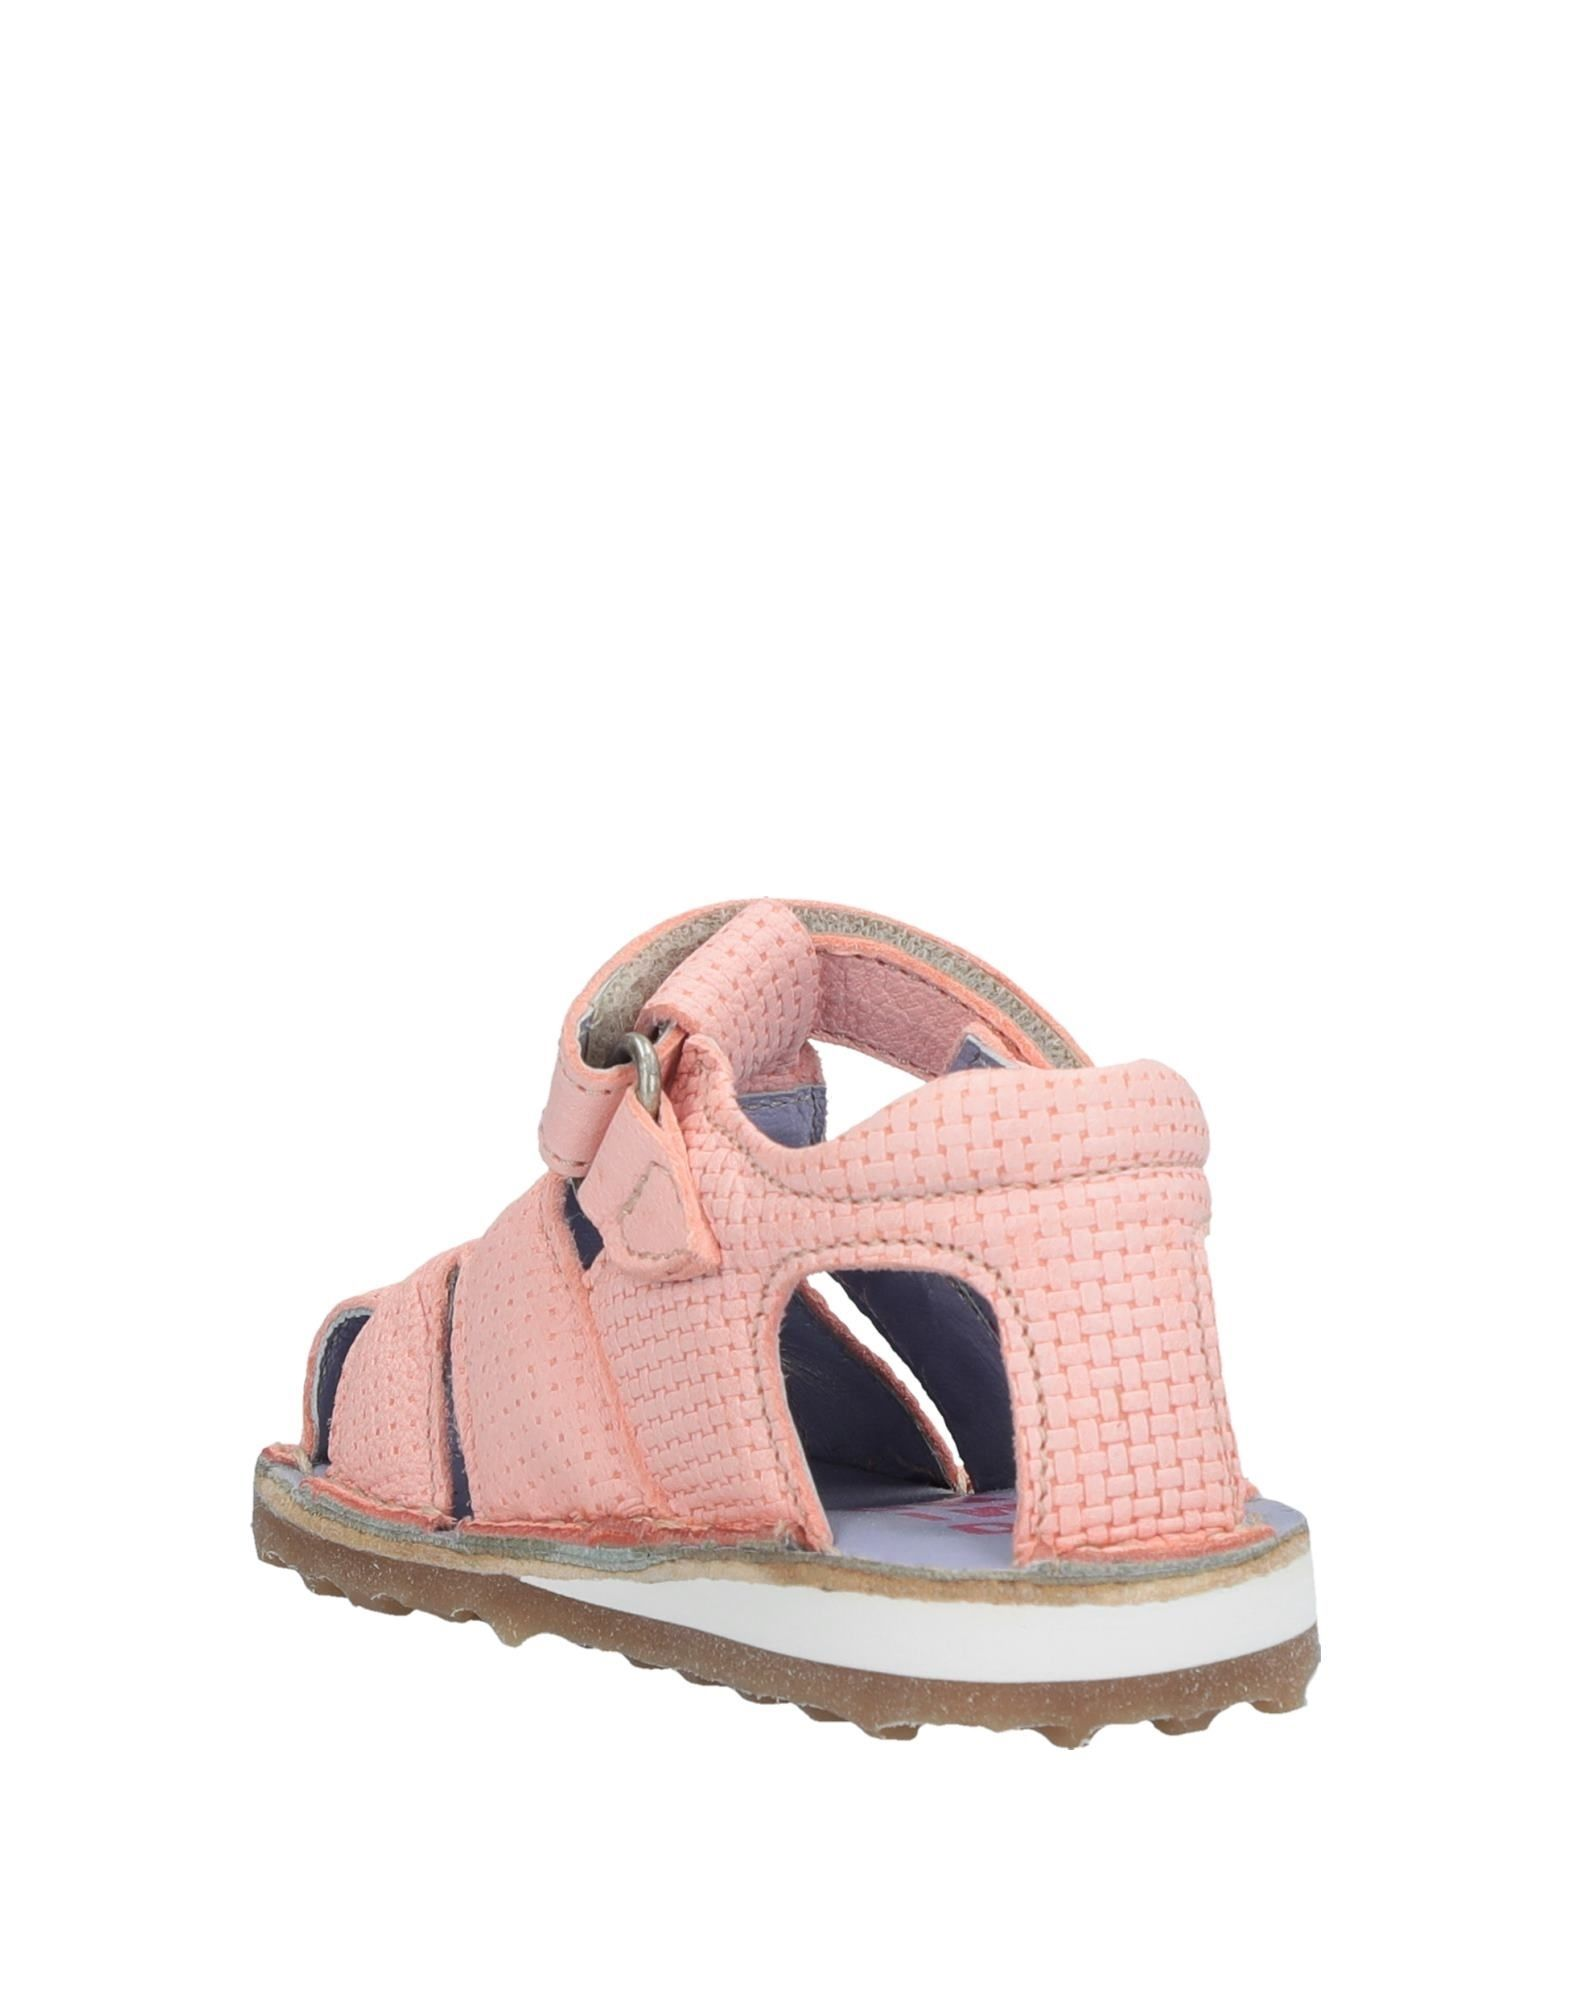 Momino Salmon Pink Girls Shoes